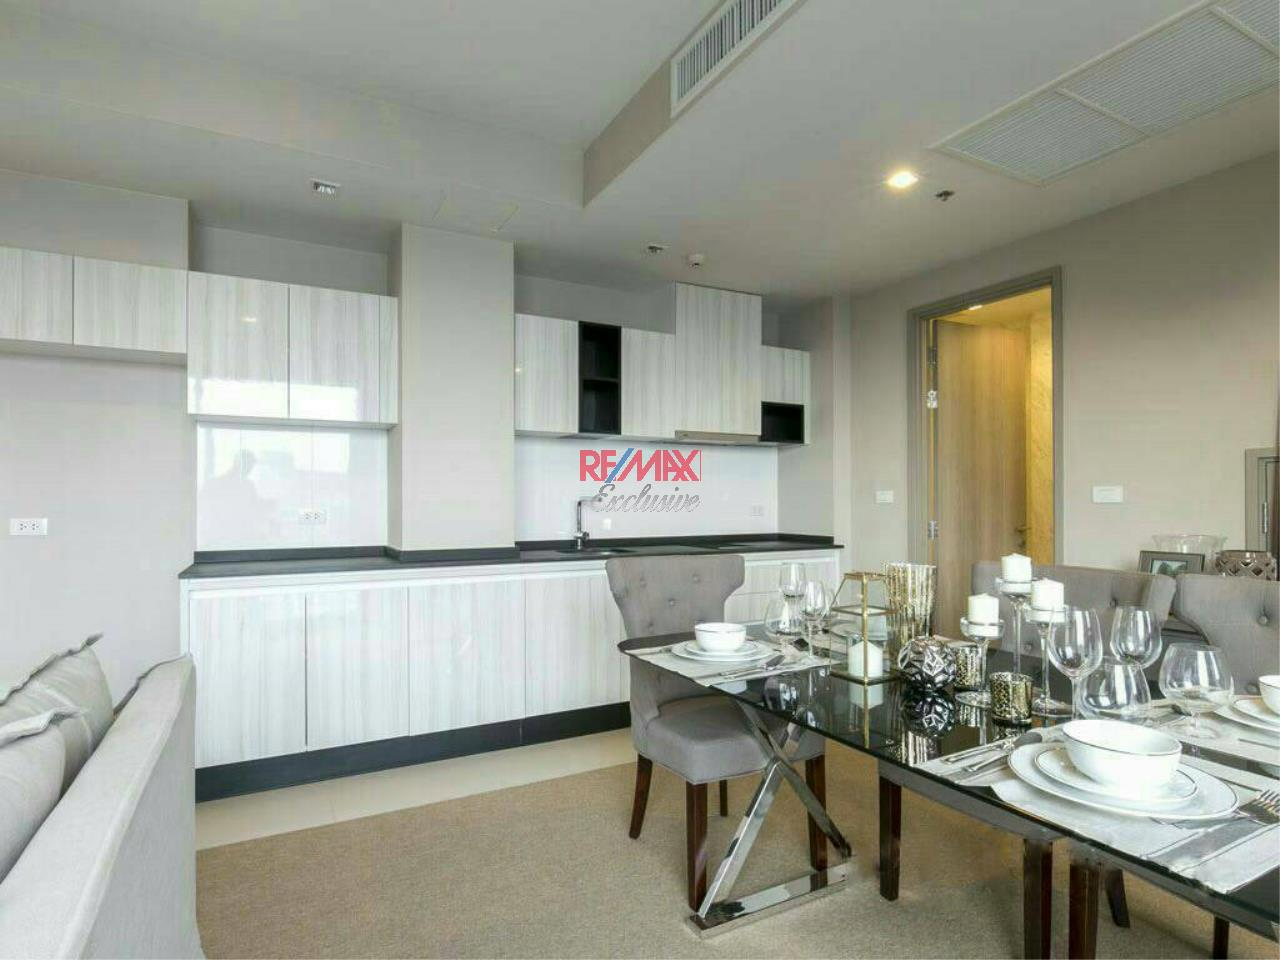 RE/MAX Exclusive Agency's HQ Thonglor., 1 Bedroom DUPLEX, 80 Sqm. Fully-Furnished, Stunning View For Sale with Tenant !!! 6